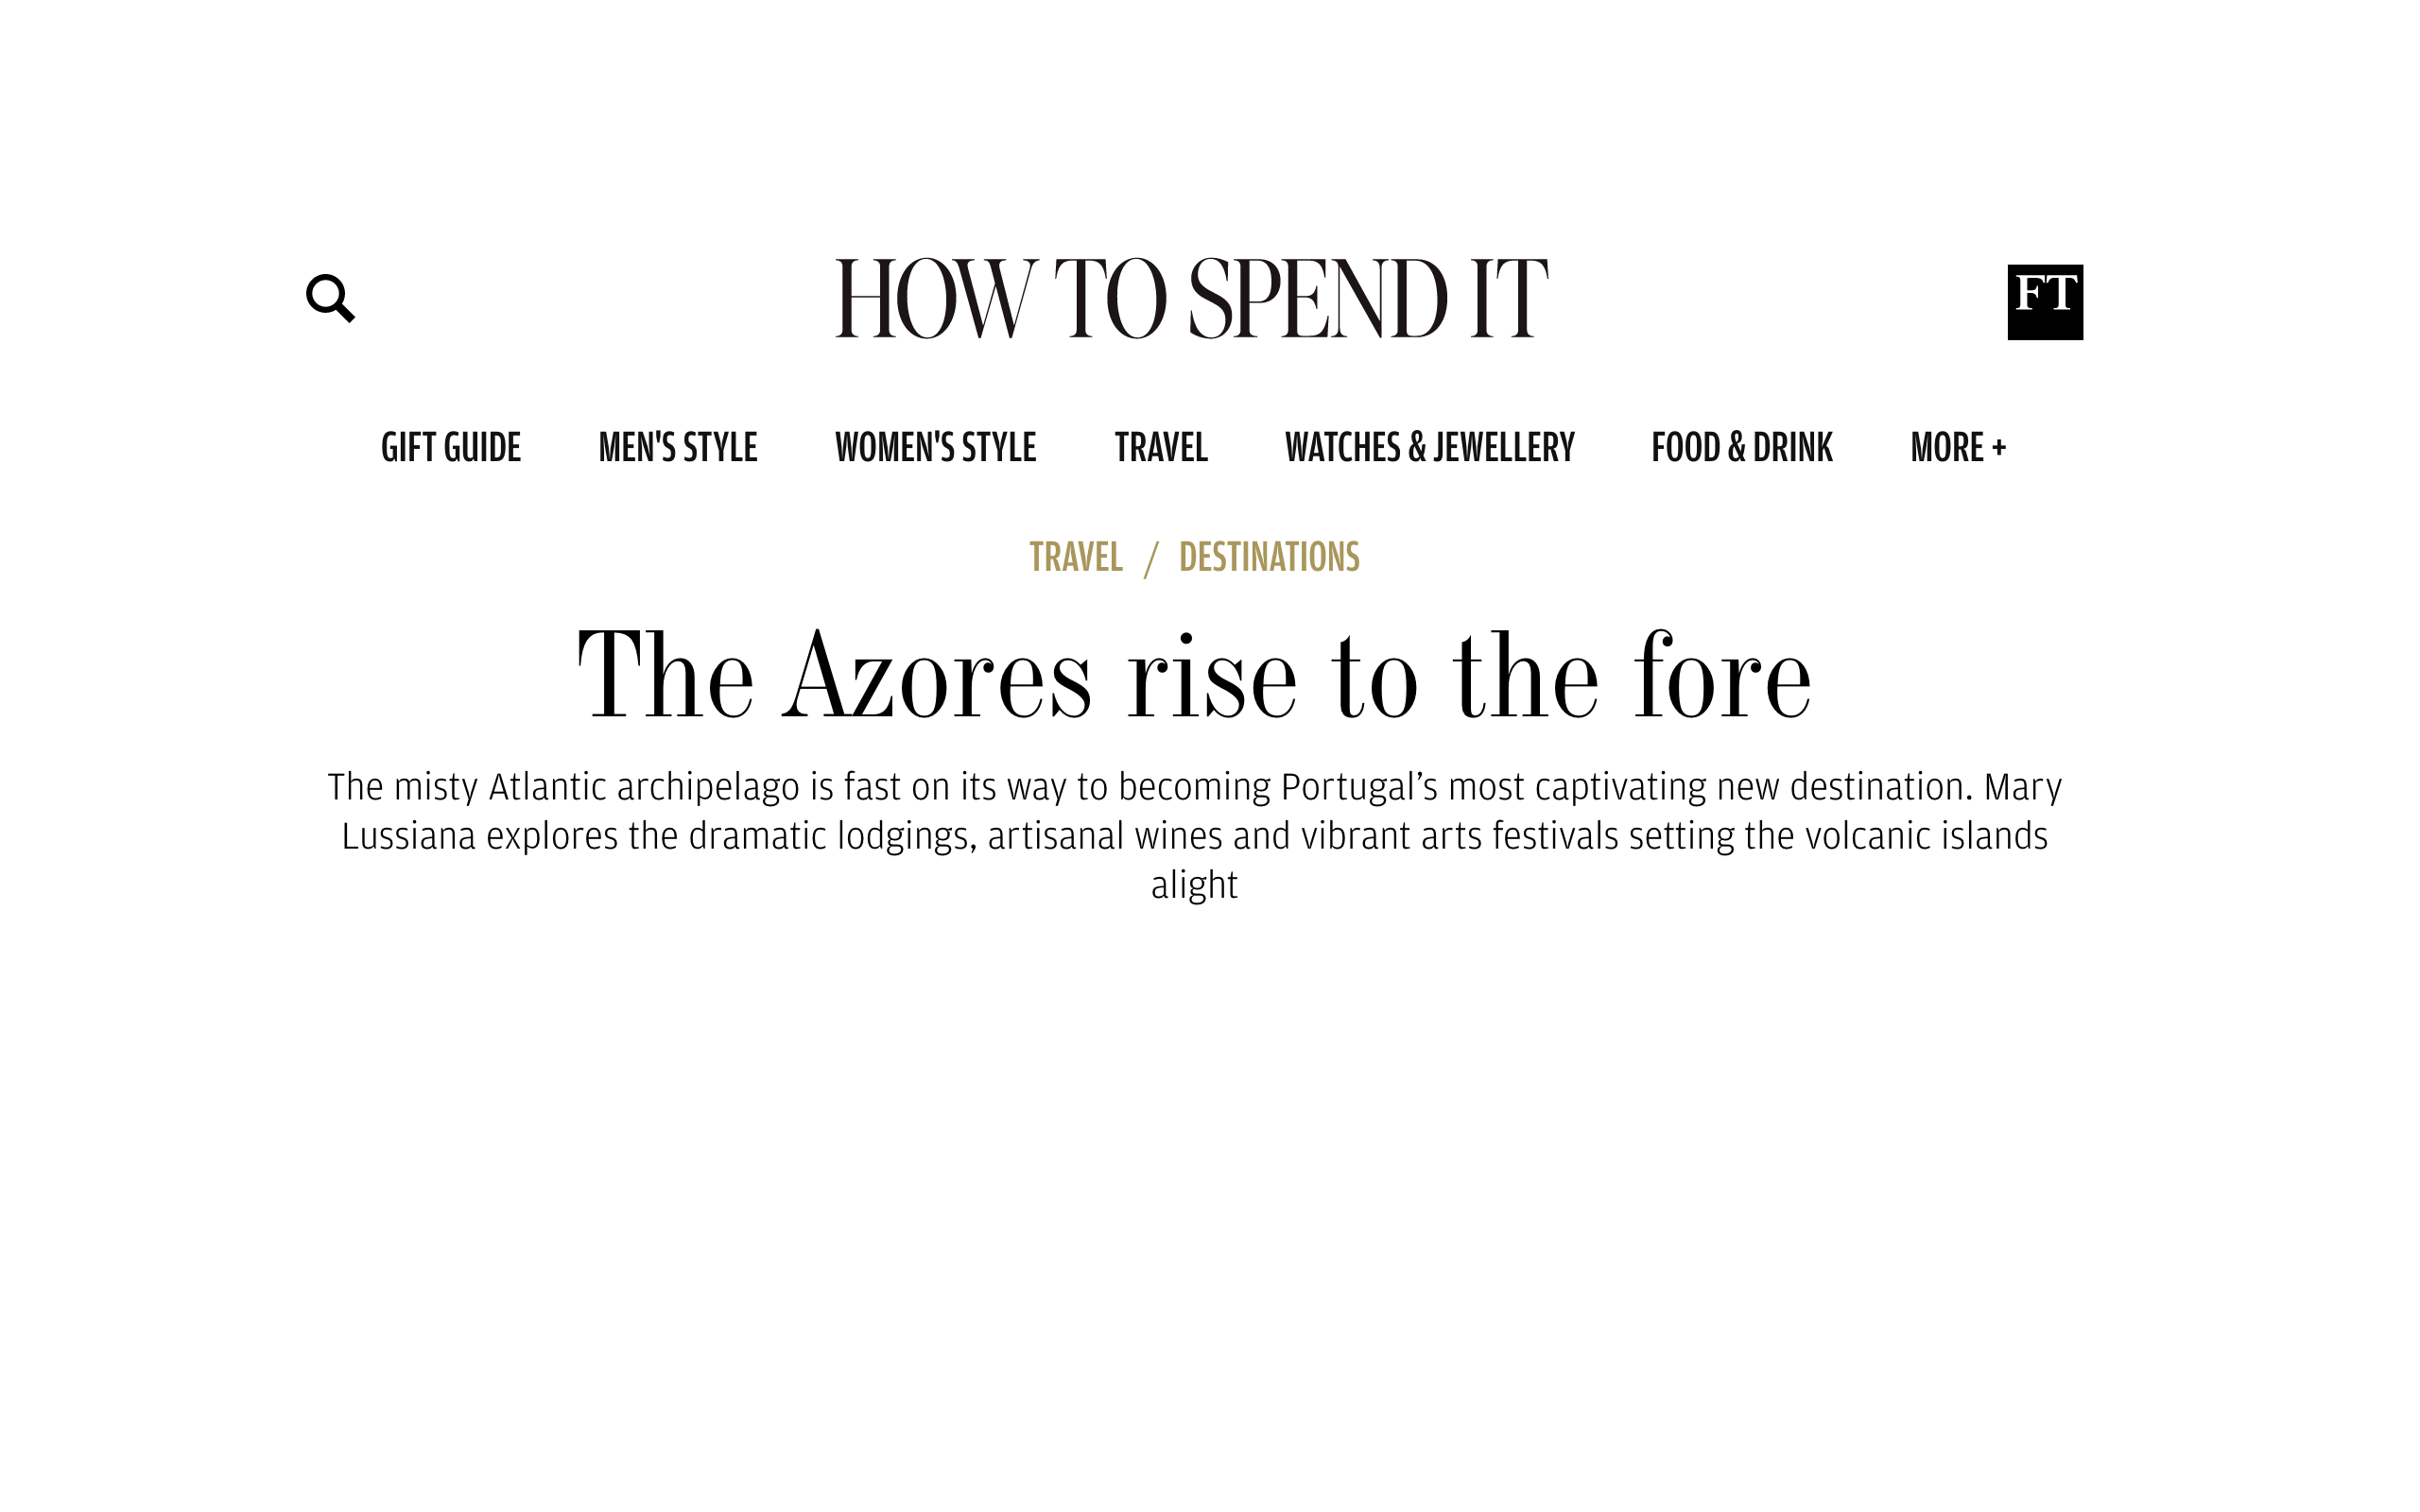 The Azores rise to the fore